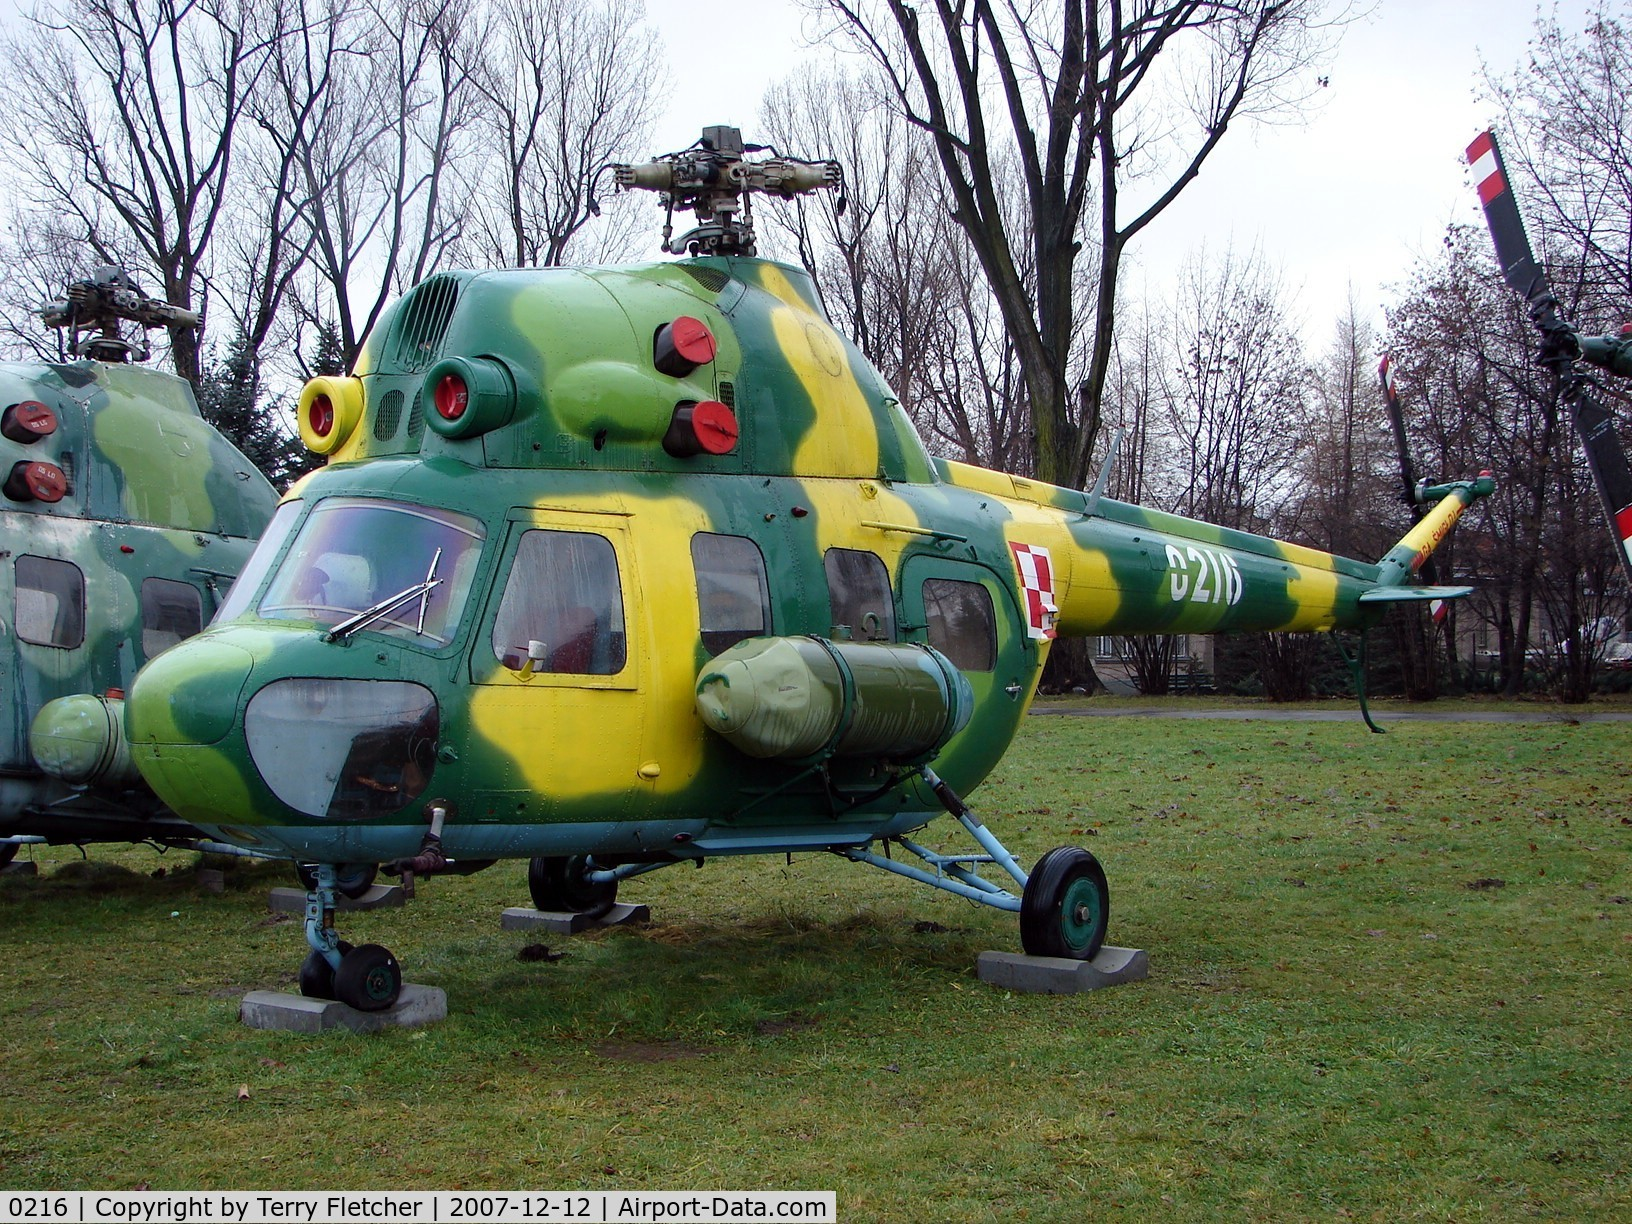 0216, 1967 PZL-Swidnik Mi-2T Hoplite C/N 530216116, This Mil Mi-2T c/n 530216116 is preserved at the Poland Aviation Museum in Krakow